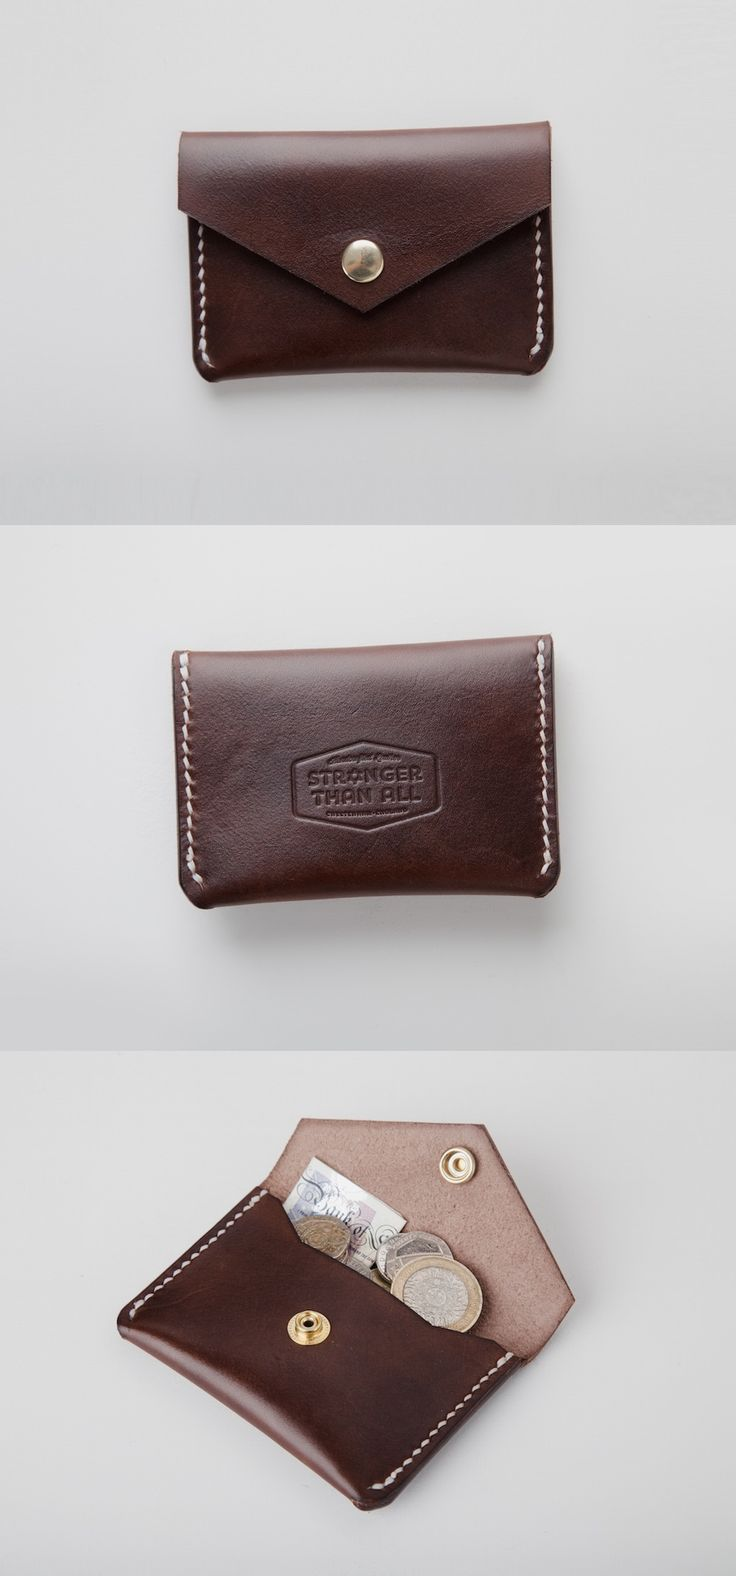 Deep Brown Handmade Leather Snap Wallet by Stronger Than All #everydaycarry#EDC